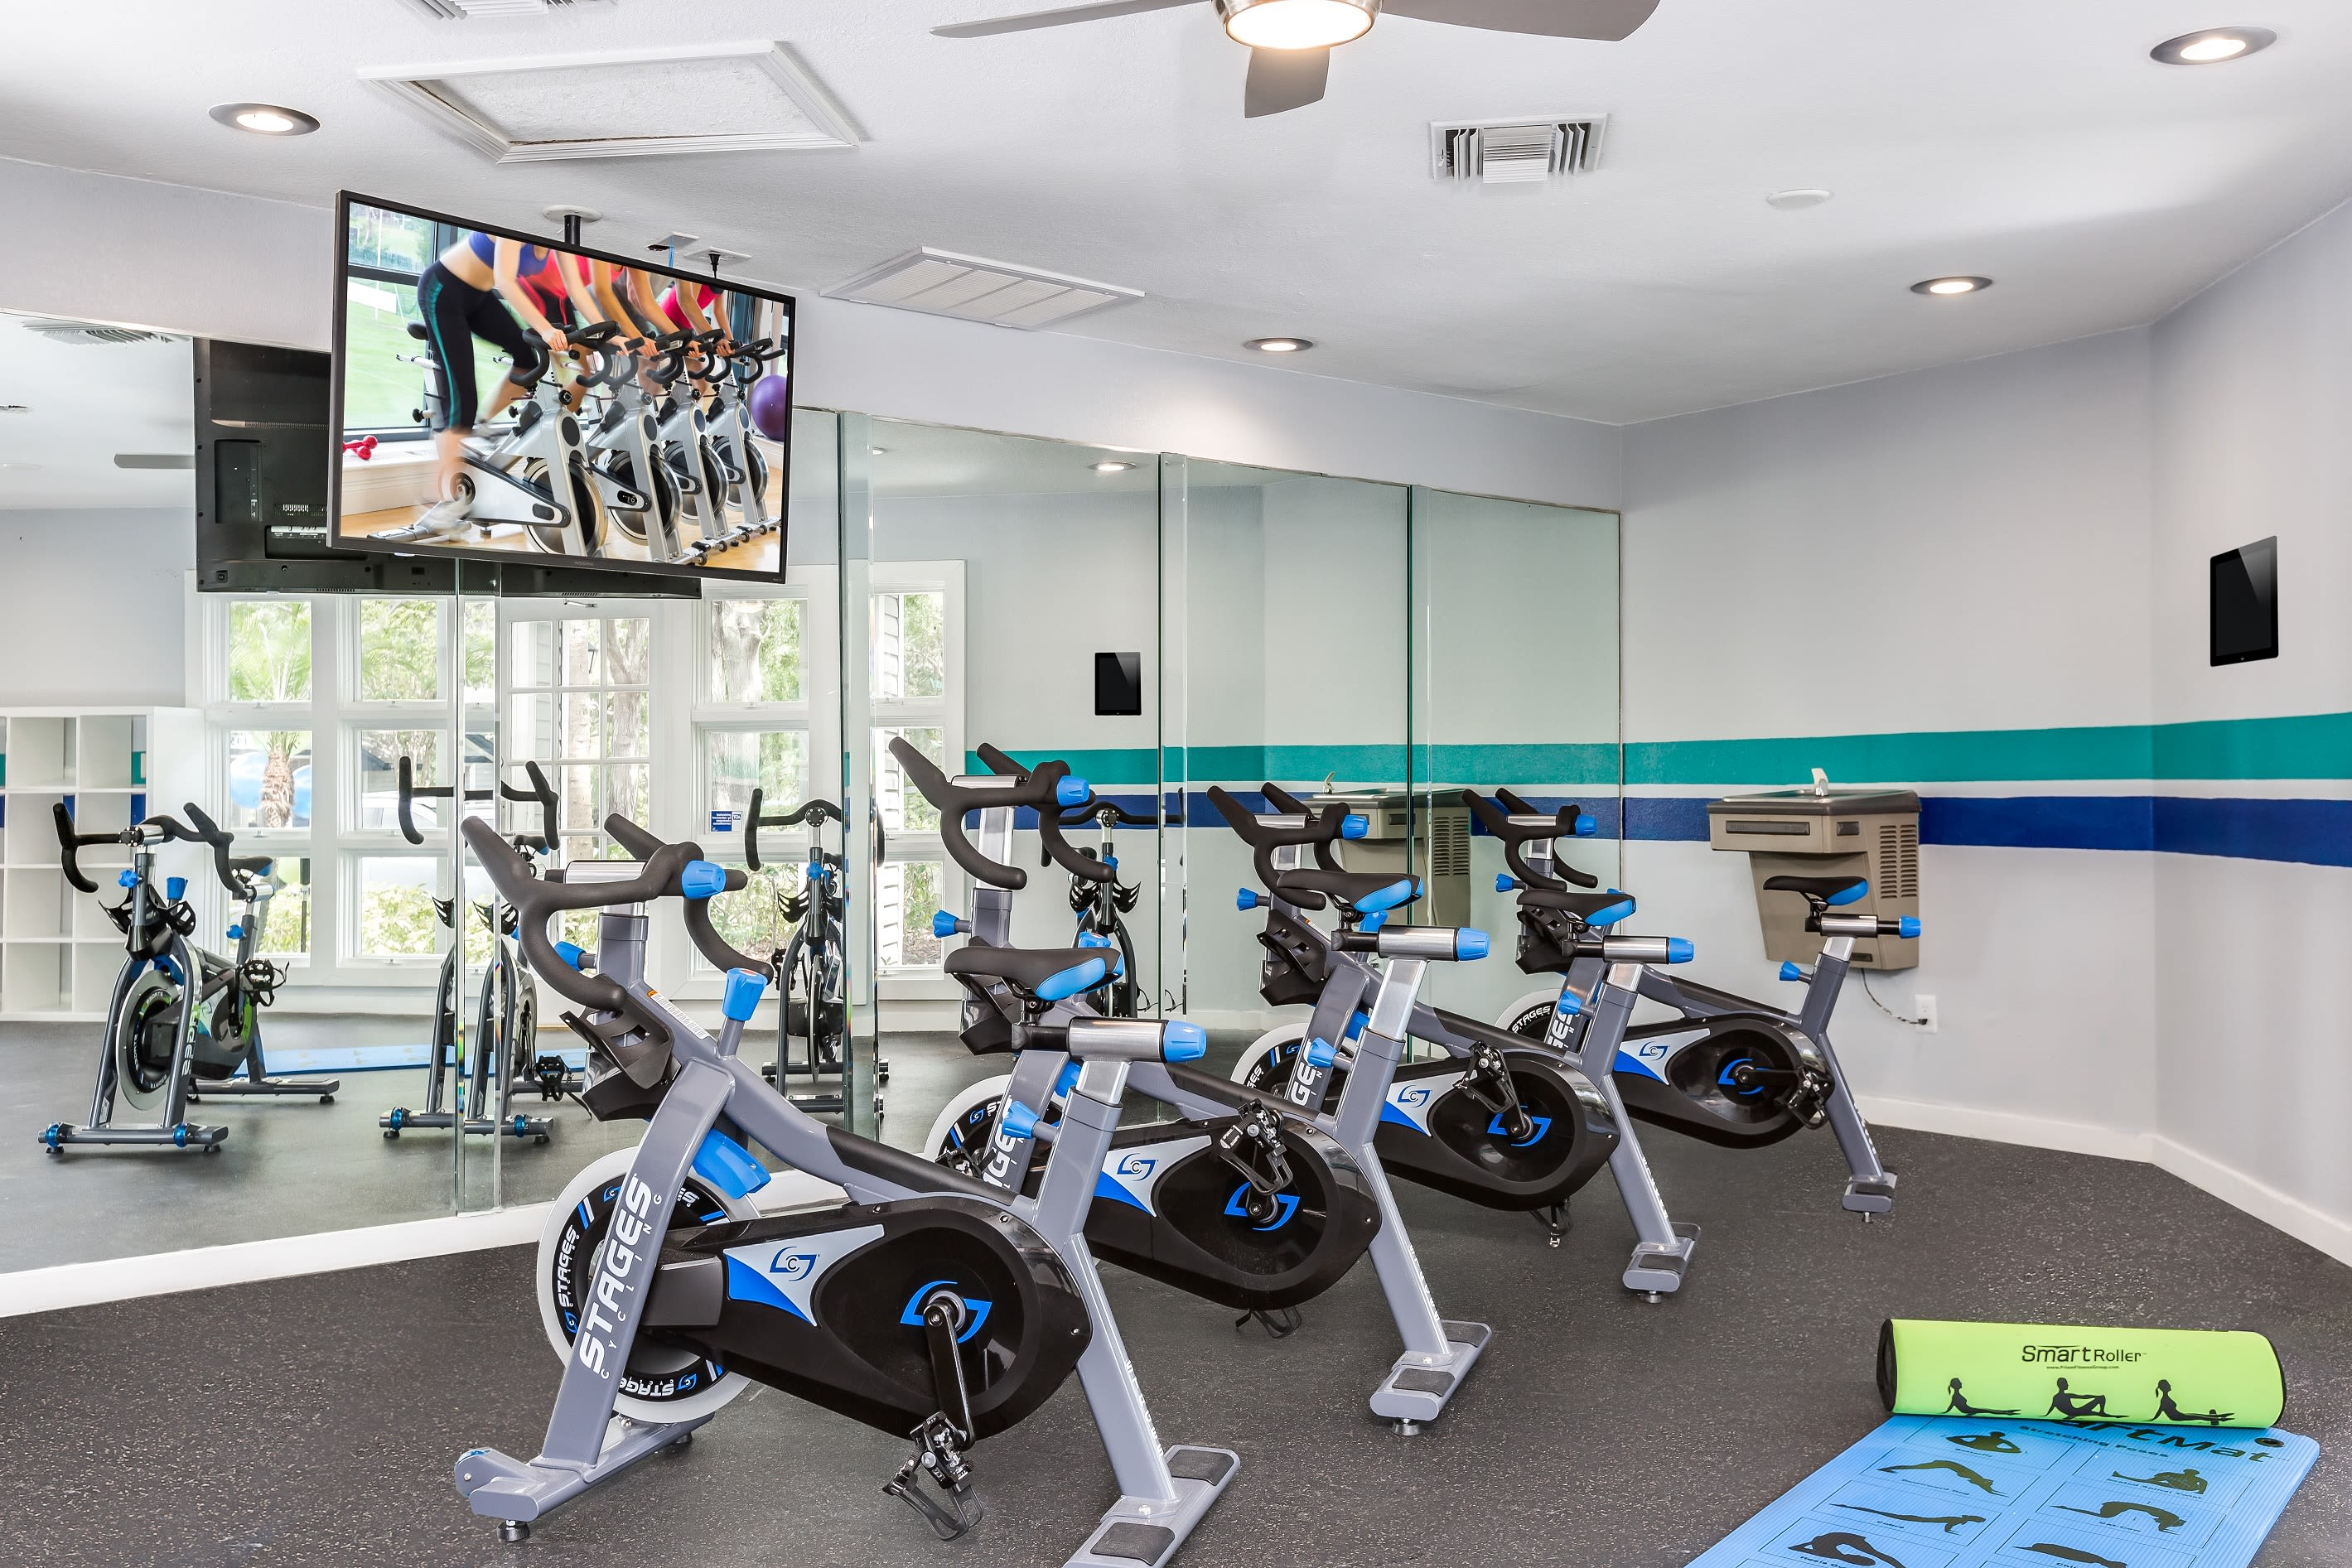 Plenty of stationary bikes found at Reserve at Lake Irene in Casselberry, Florida